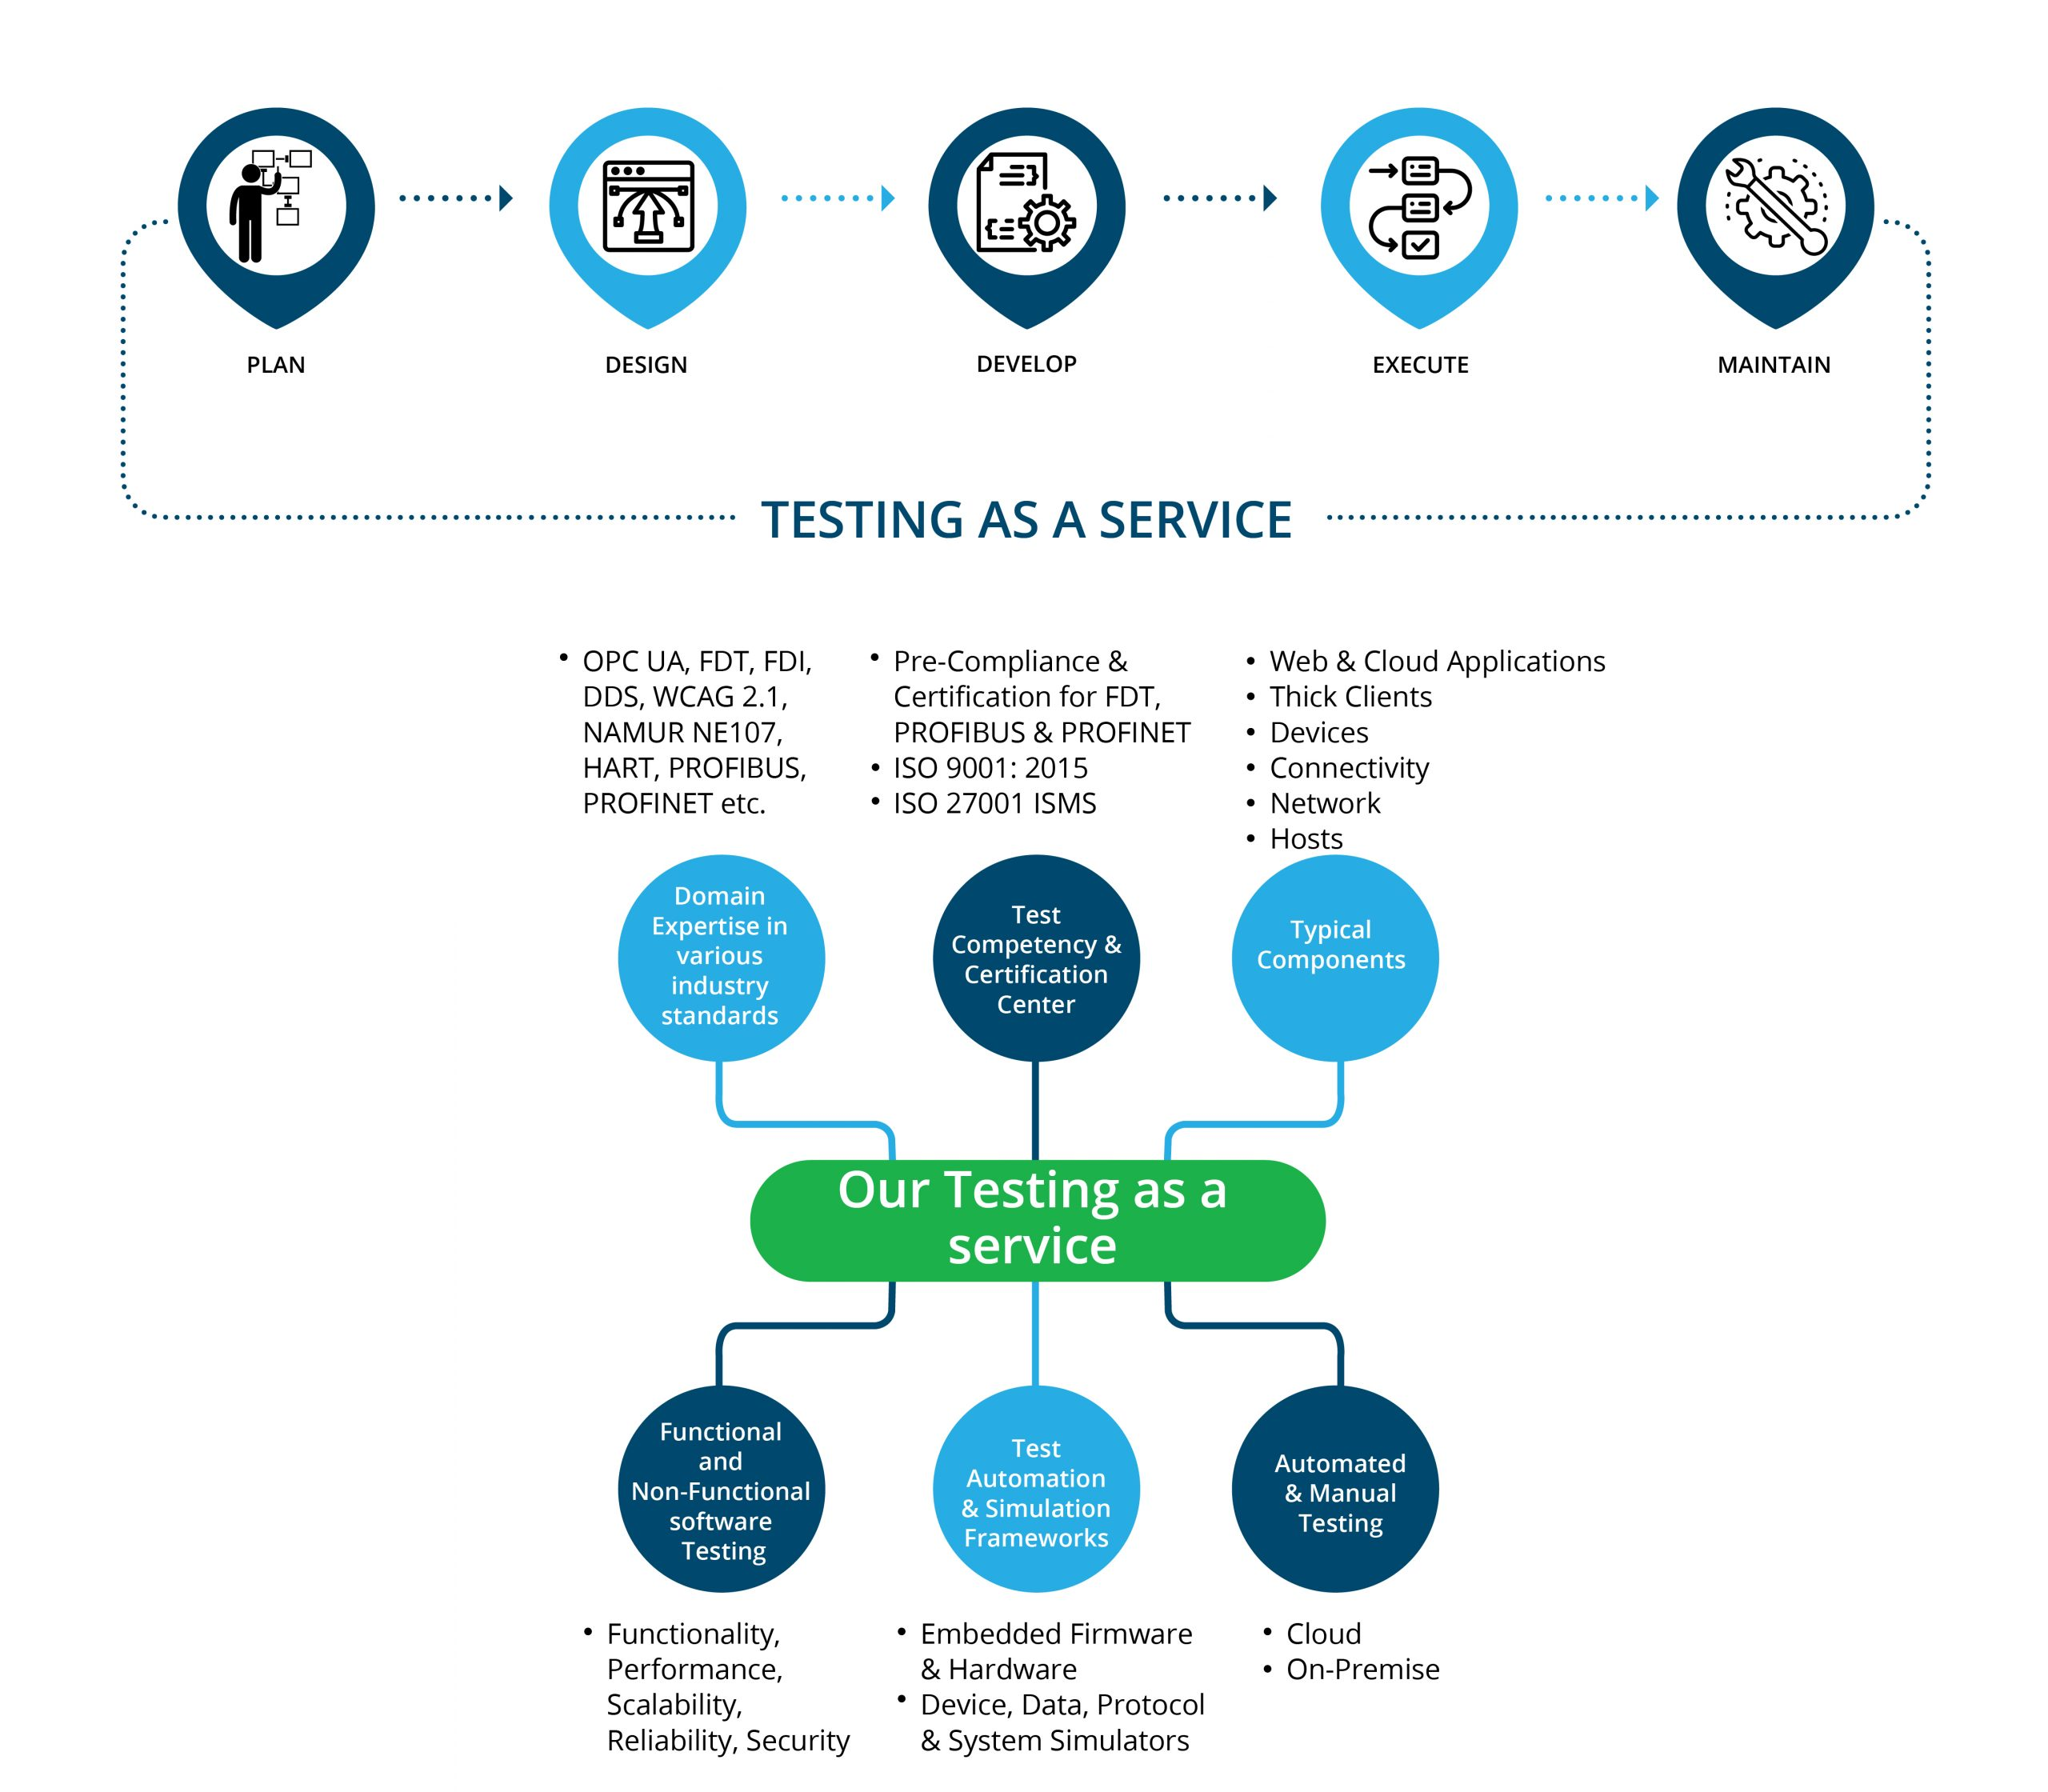 Testing as a service